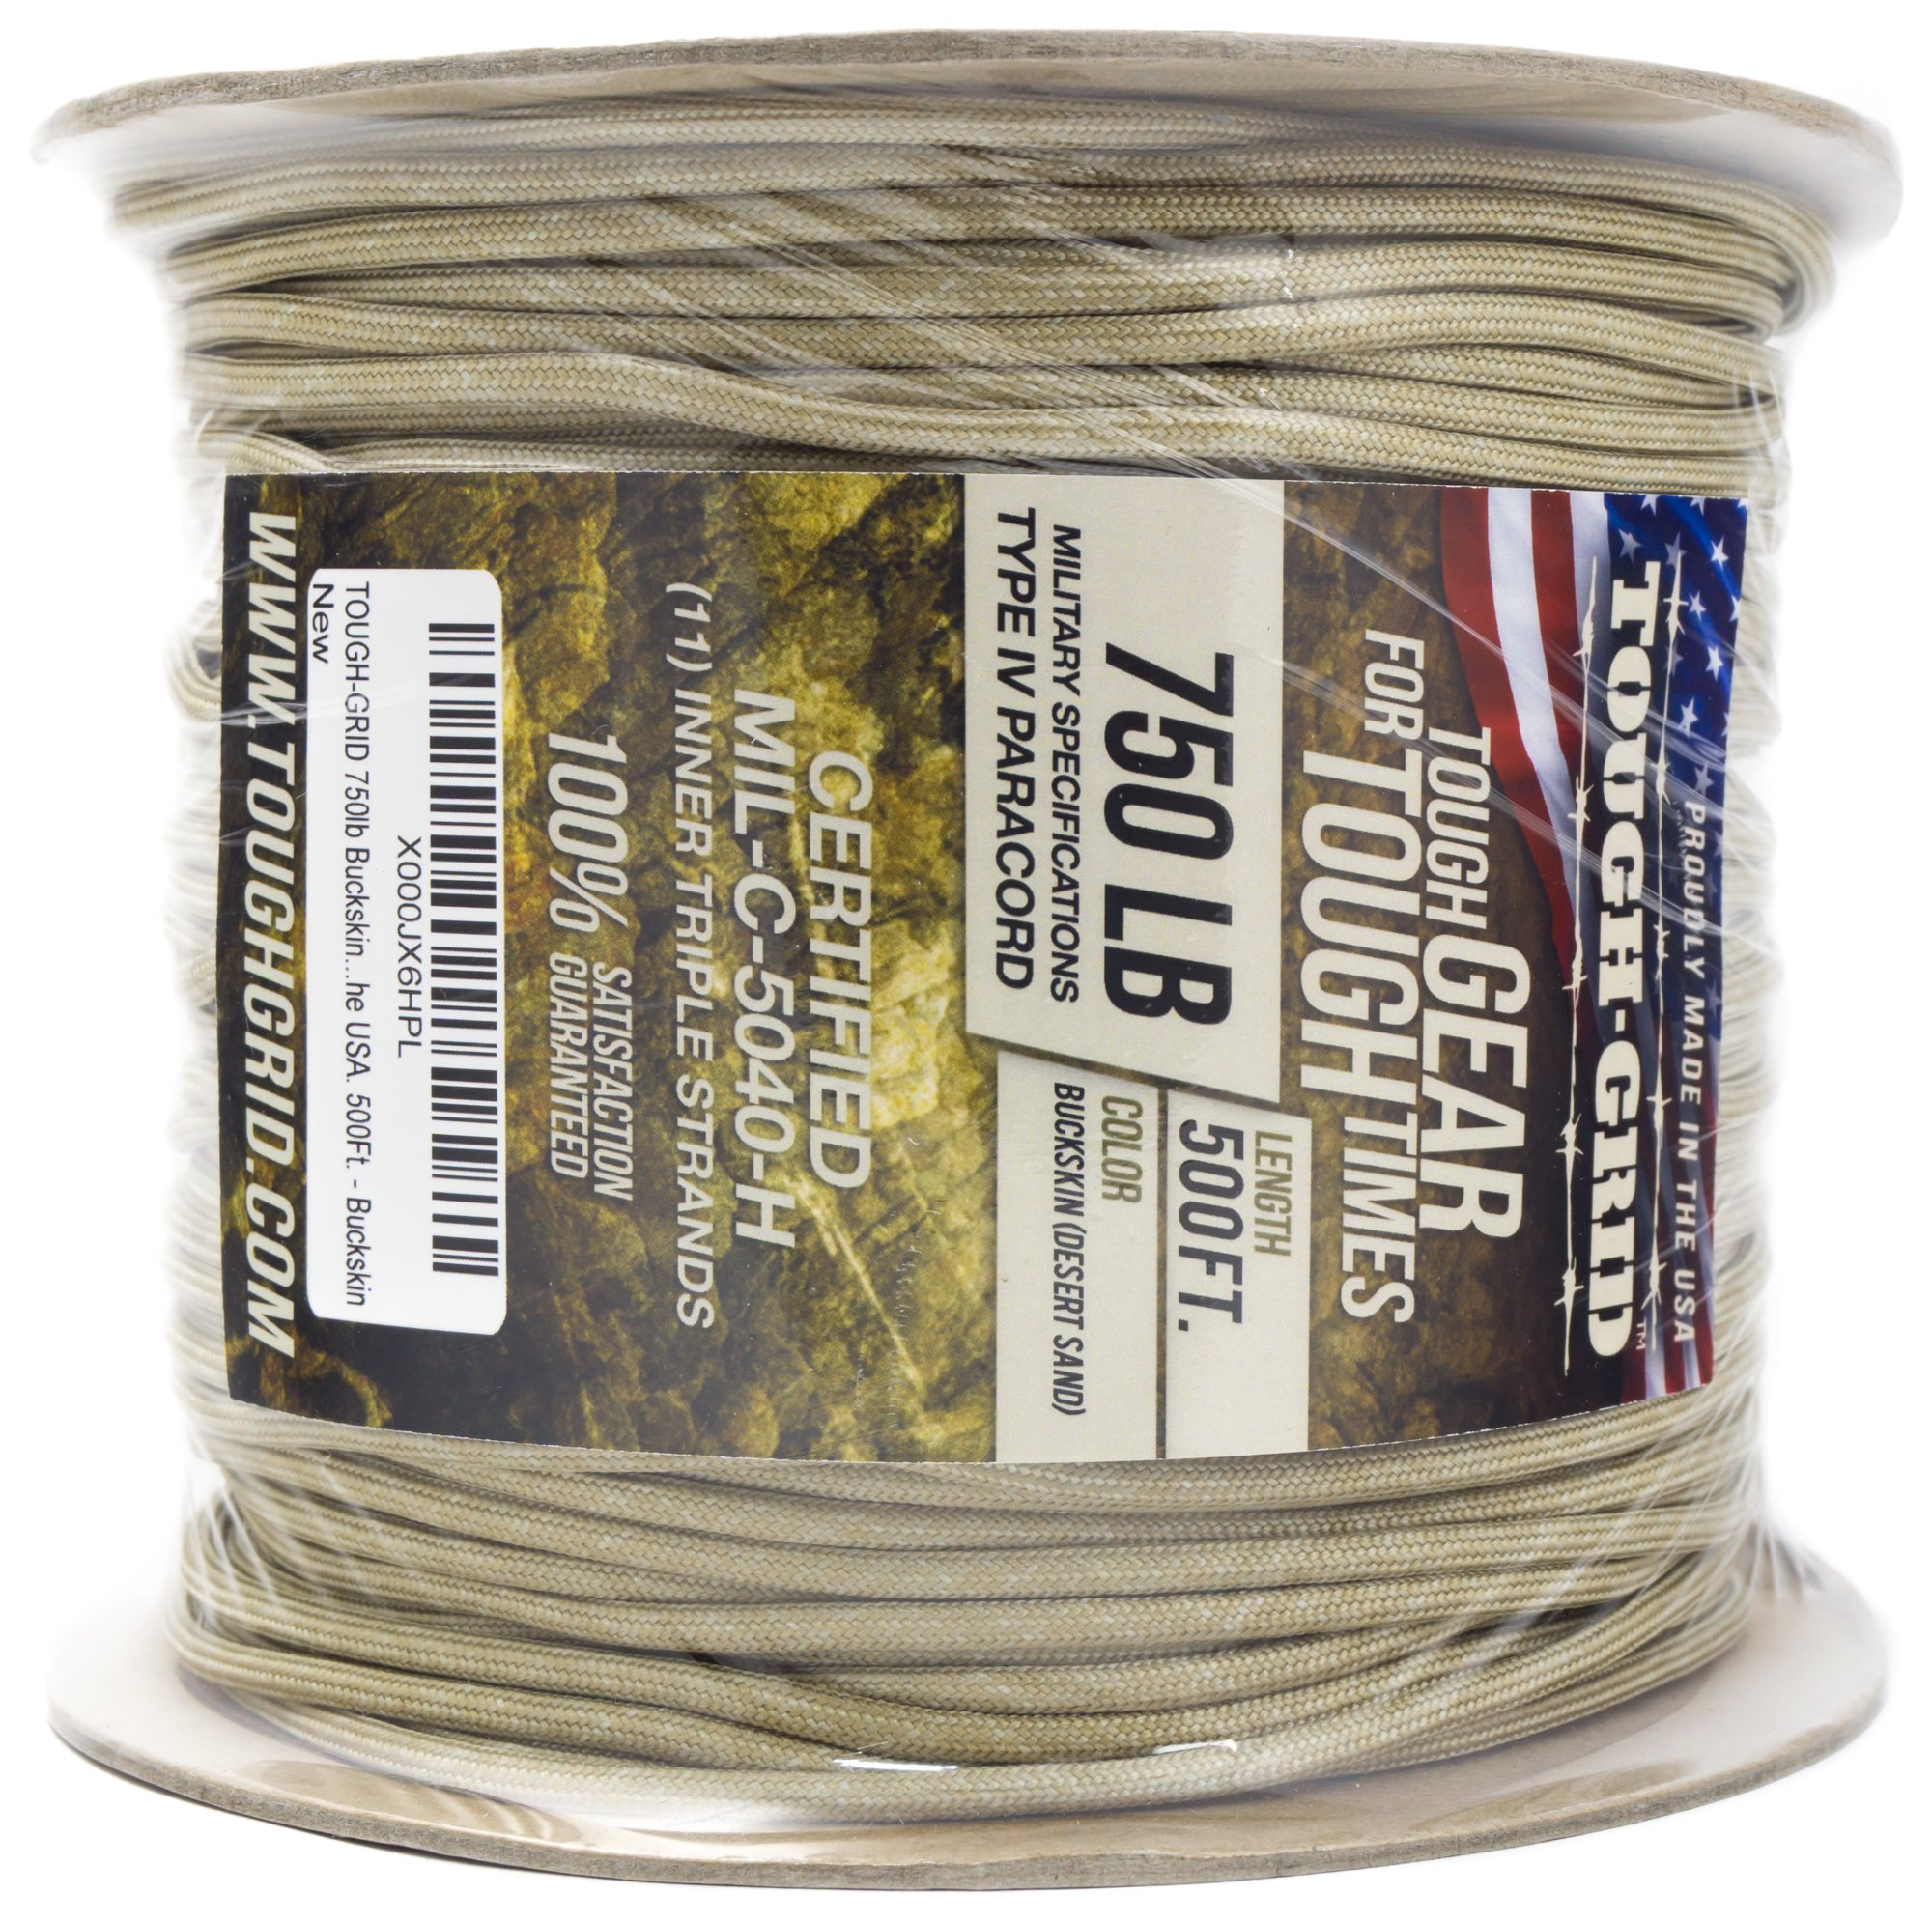 TOUGH-GRID 750lb Buckskin (Desert Sand) Paracord/Parachute Cord - Genuine Mil Spec Type IV 750lb Paracord Used by The US Military (MIl-C-5040-H) - 100% Nylon - Made in The USA. 200Ft. - Buckskin by TOUGH-GRID (Image #10)